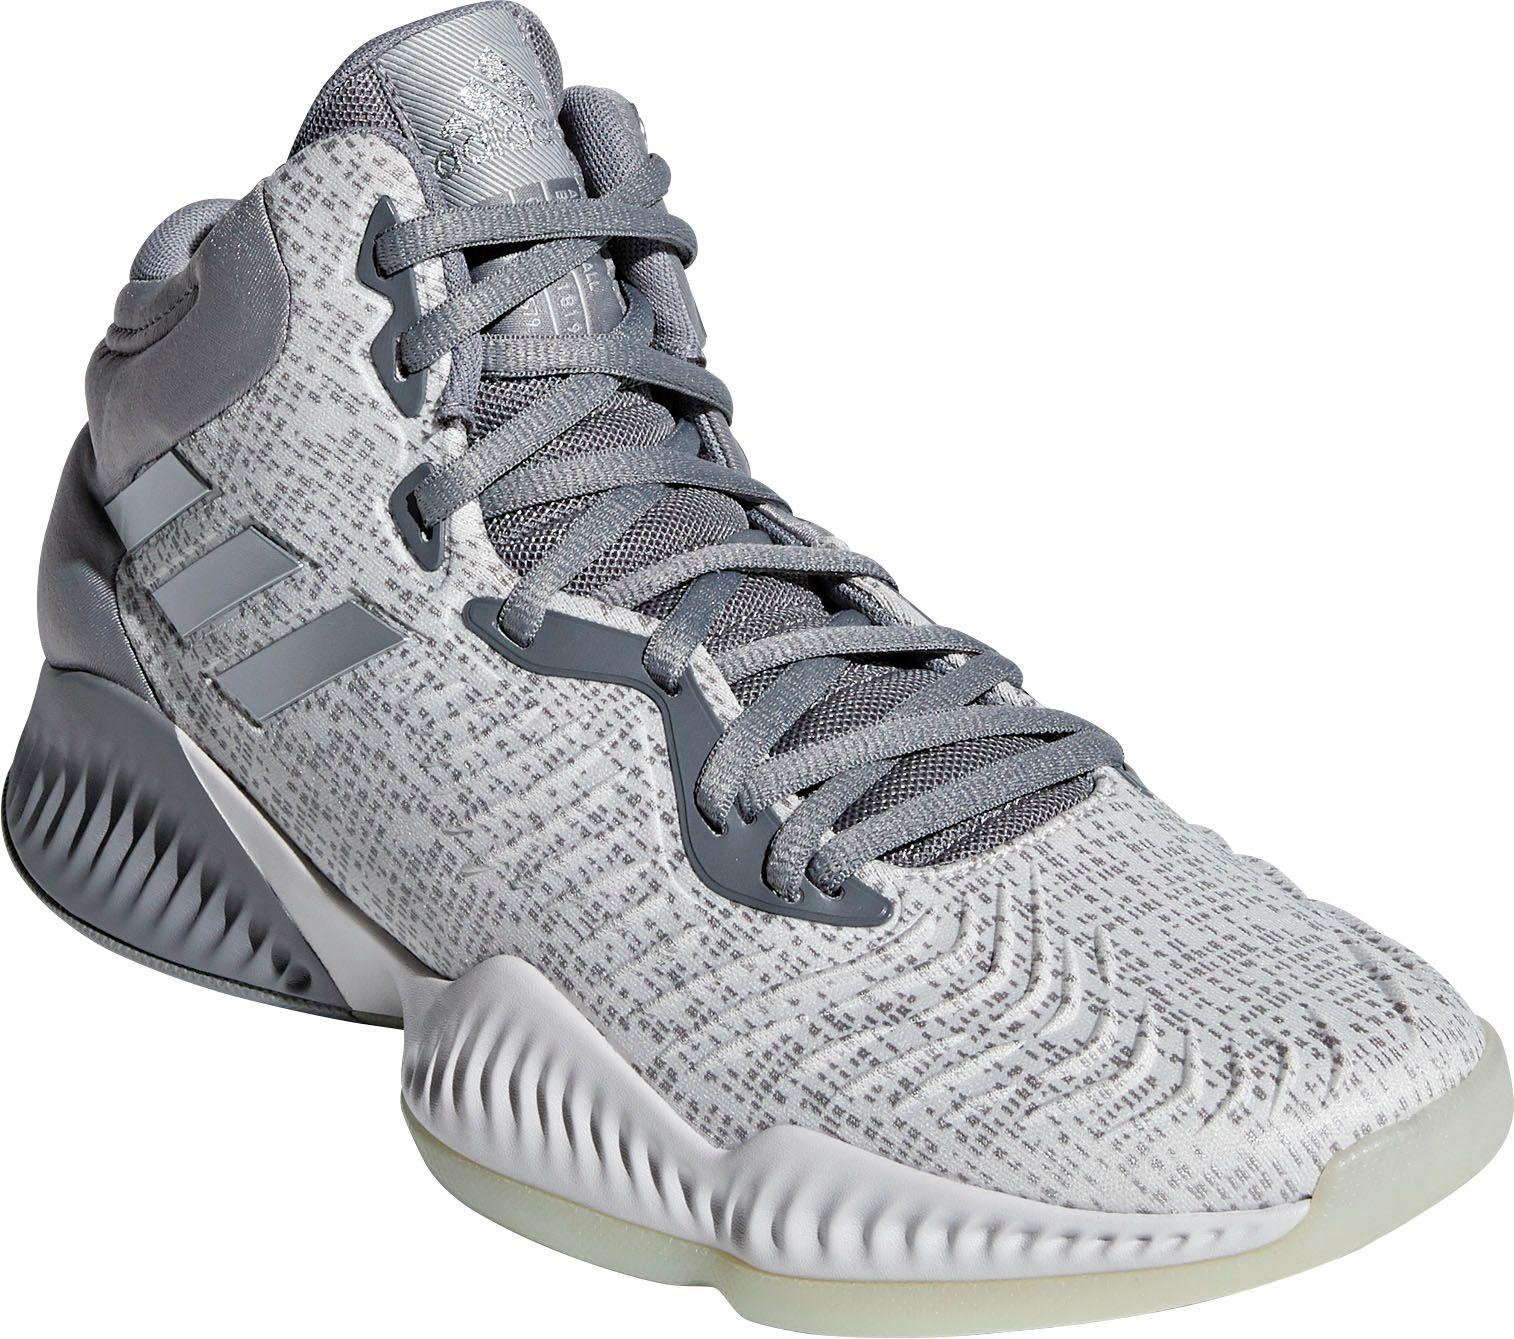 bde339224 Lyst - adidas Mad Bounce 2018 Basketball Shoes in Gray for Men